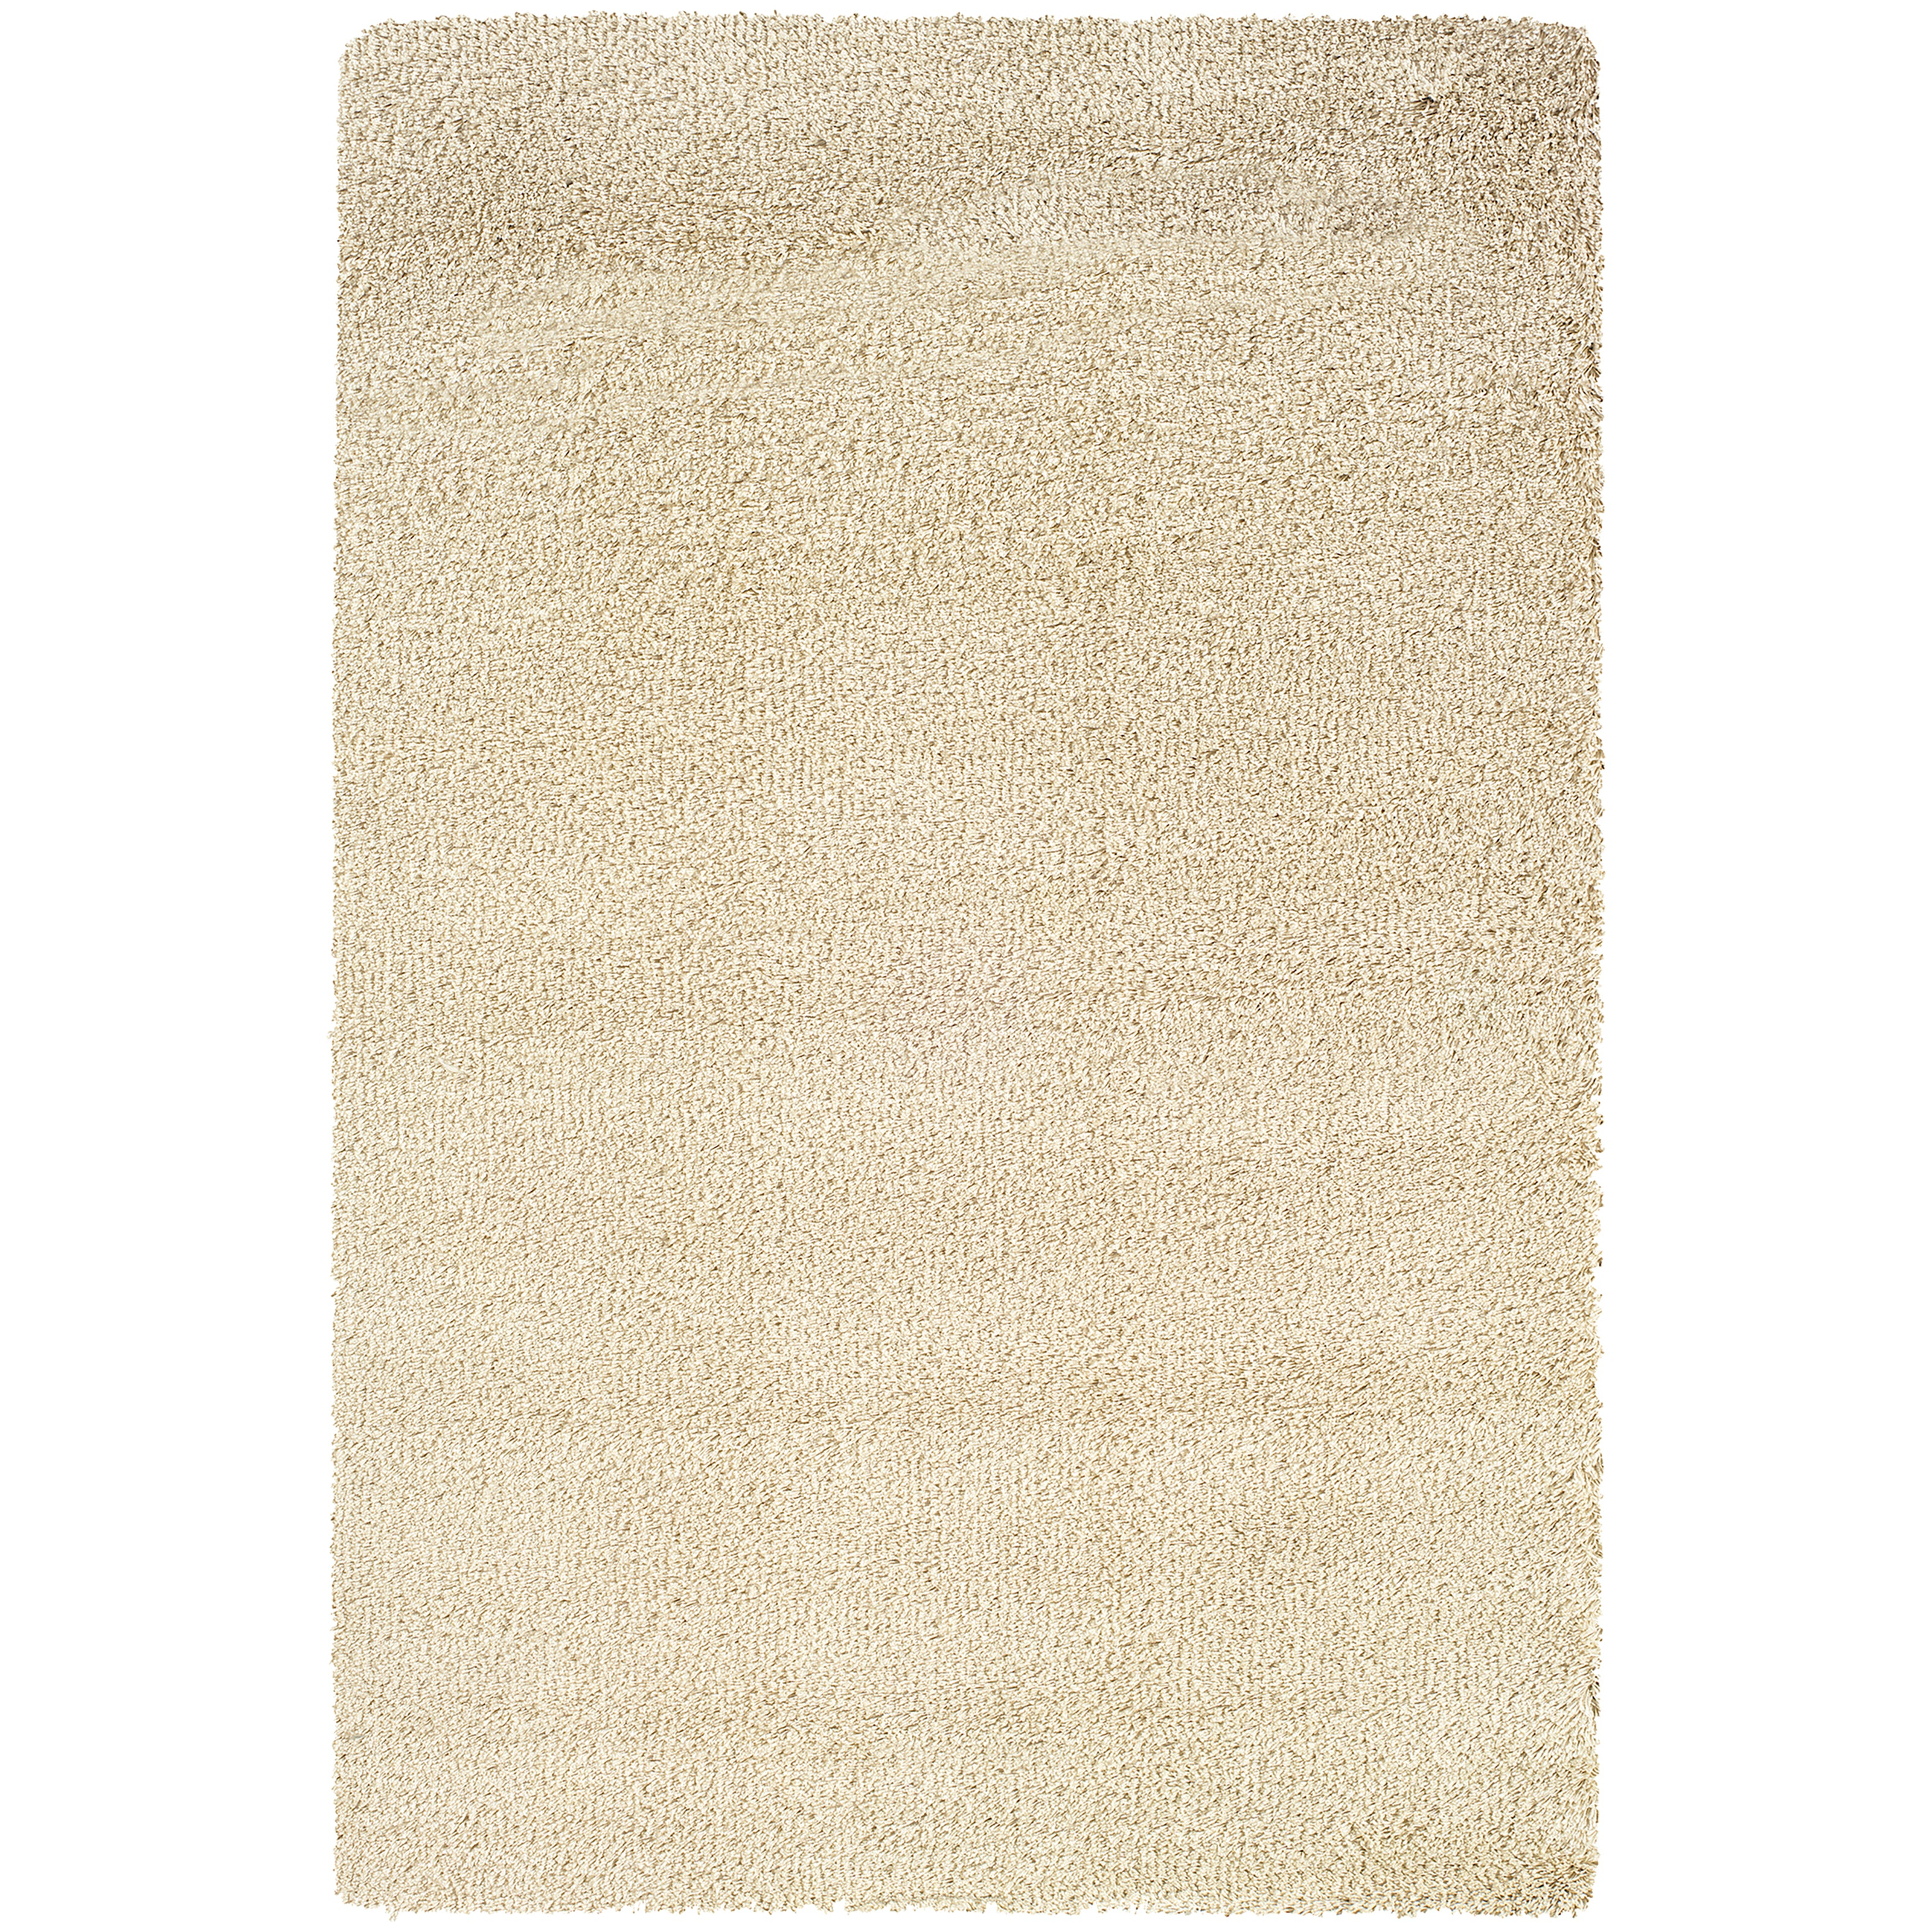 Oriental Weavers Loft Collection Ivory Solid 520W4 Area Rug